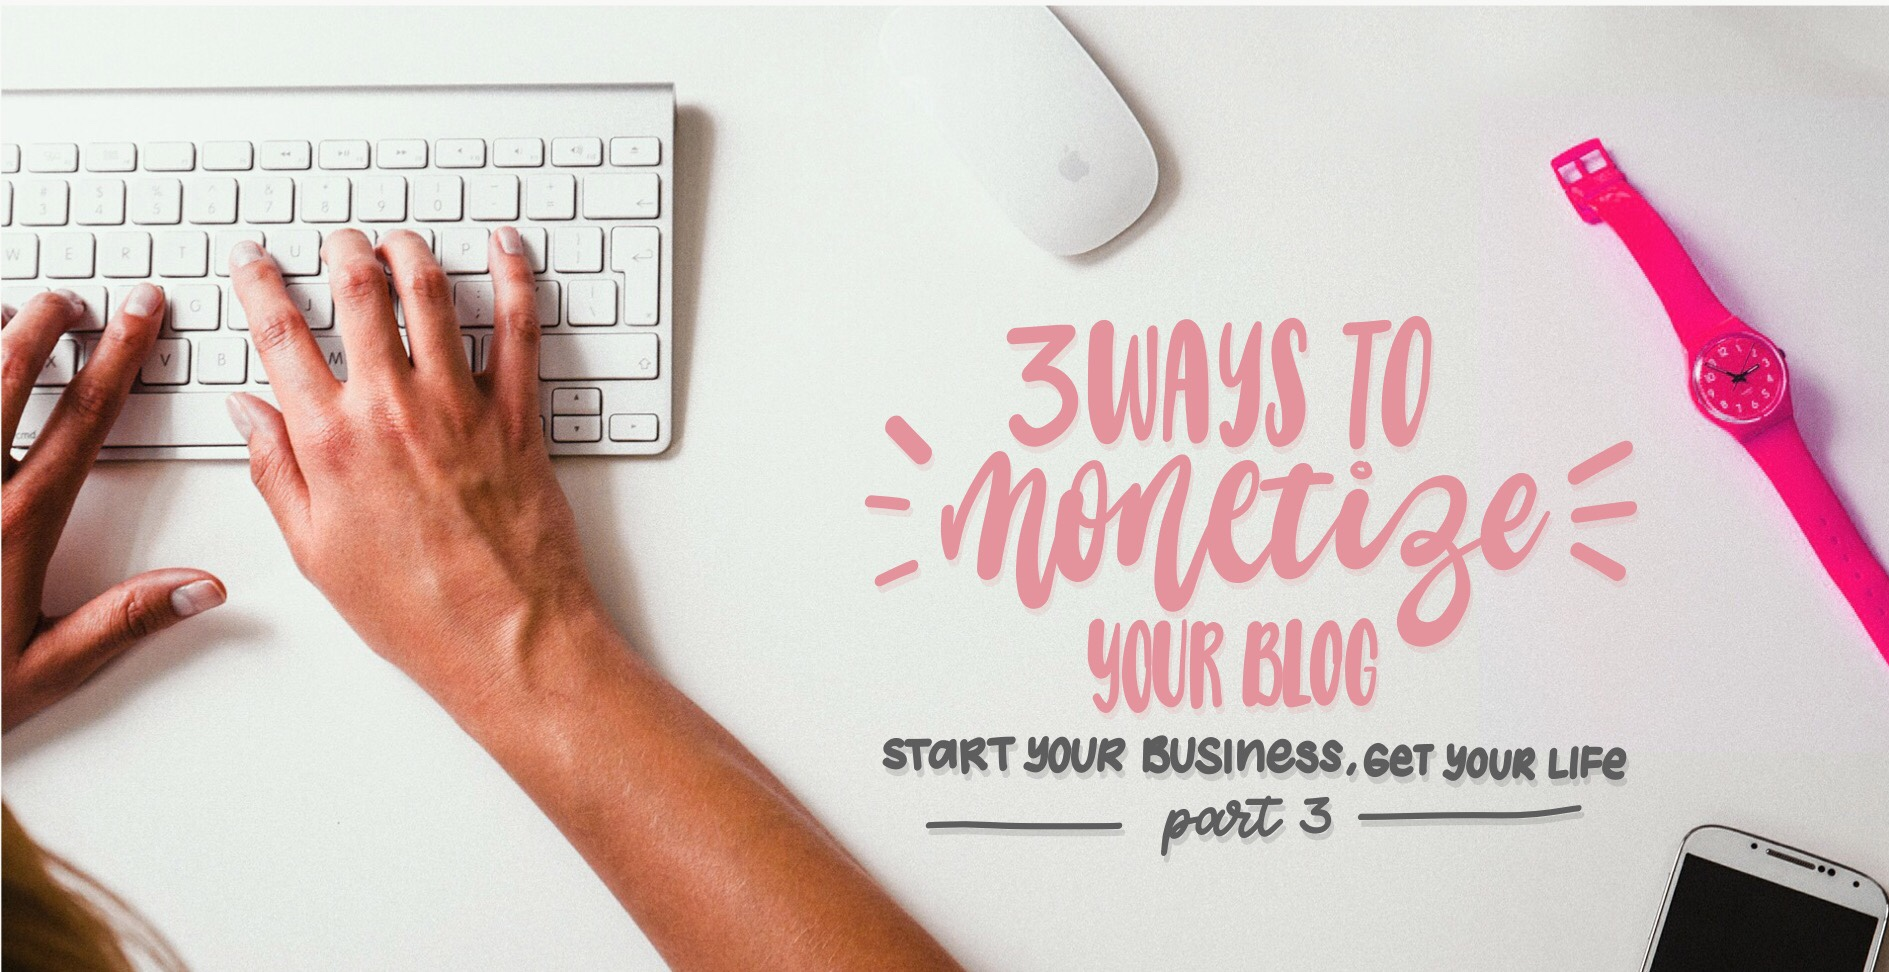 Monetizing your Blog: Start Your Blog, Get Your Life Part 3